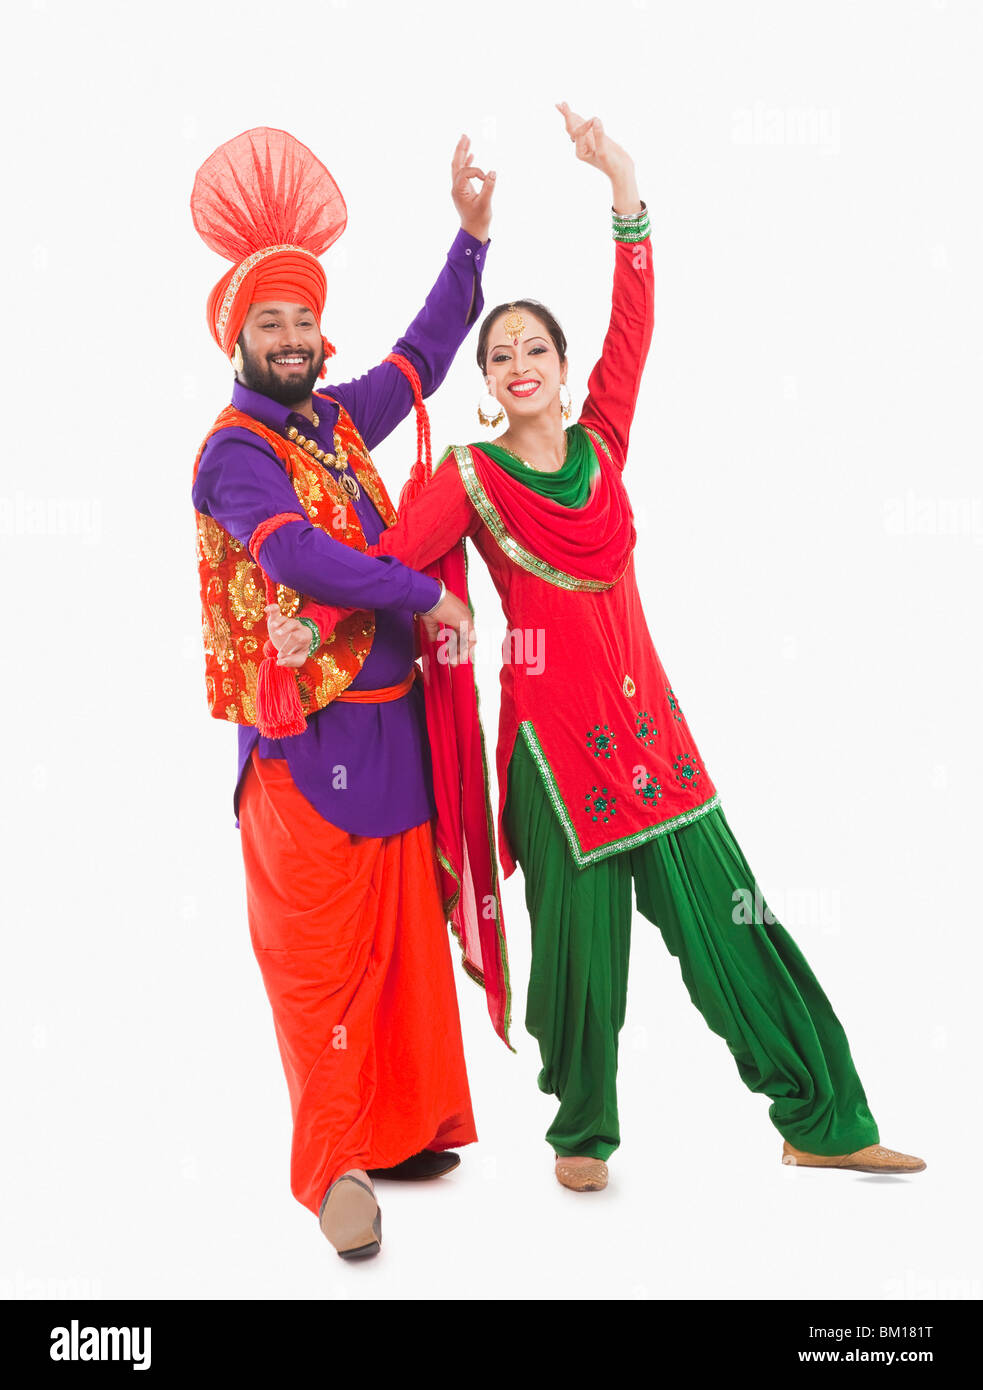 Bhangra the traditional folk dance from Punjab in North ...